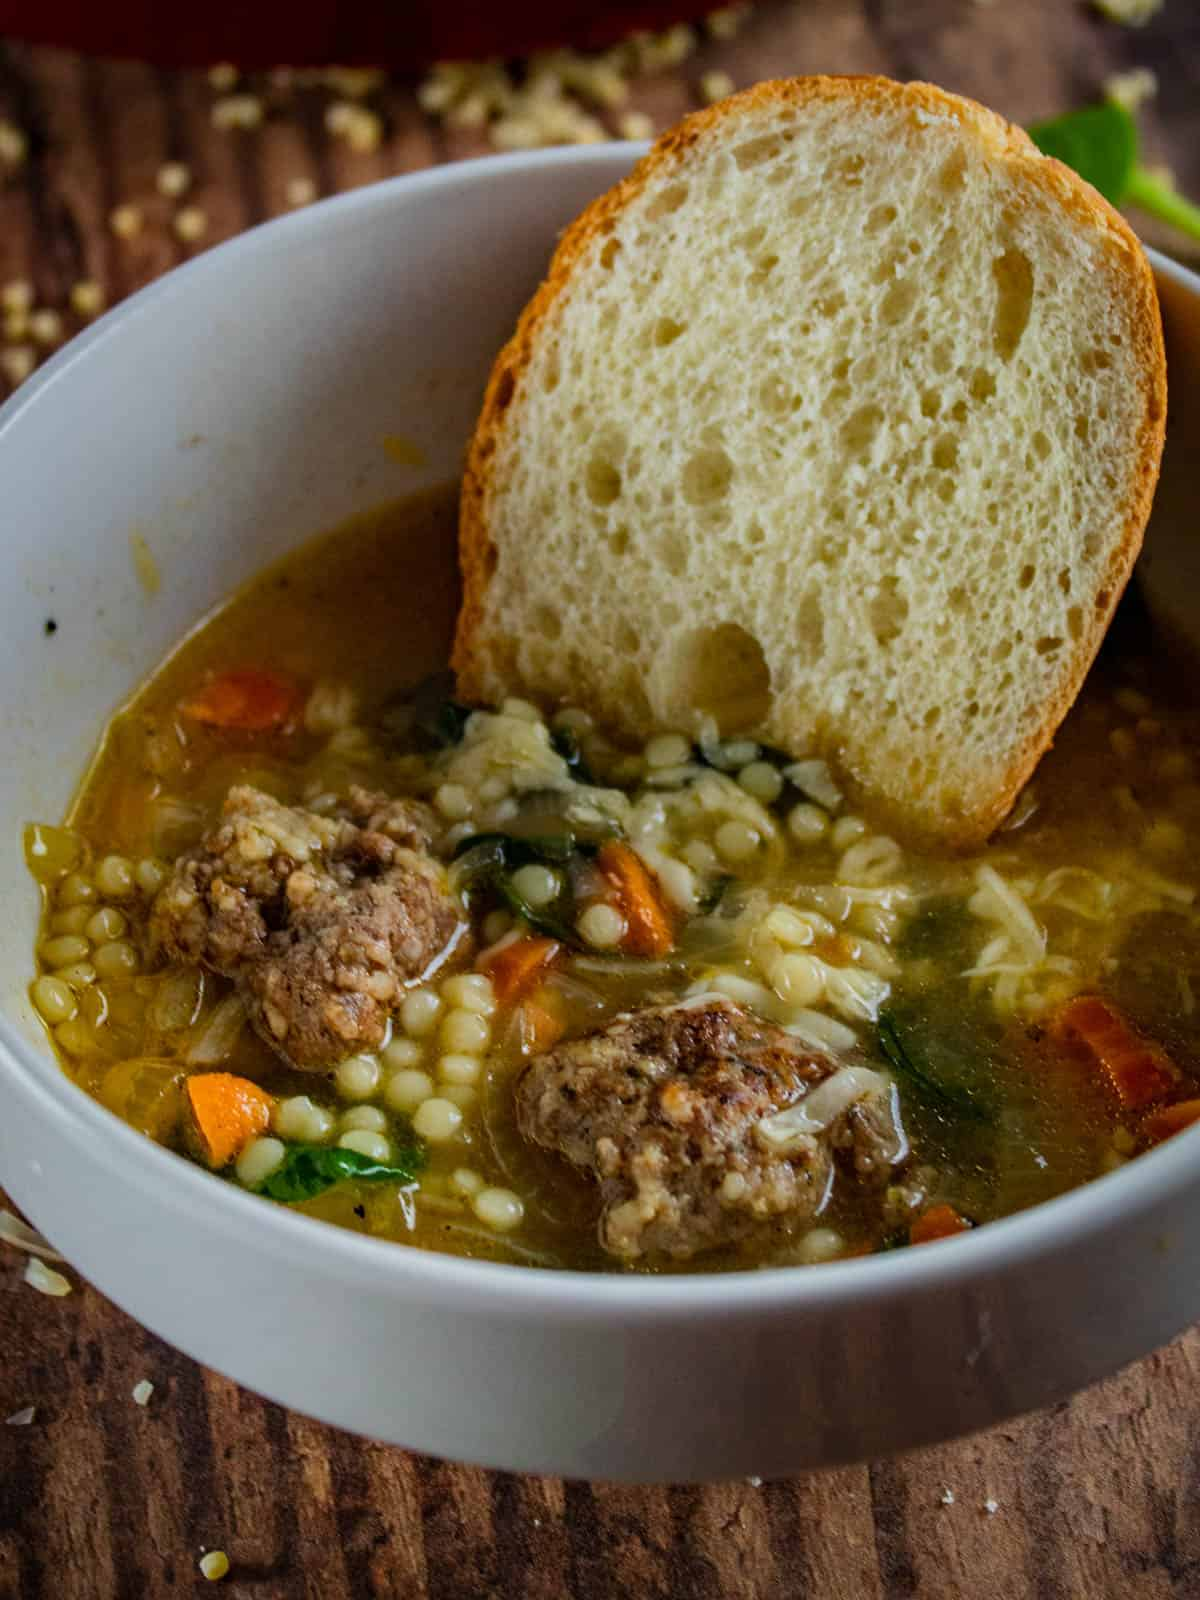 fresh bread in a bowl of italian wedding soup